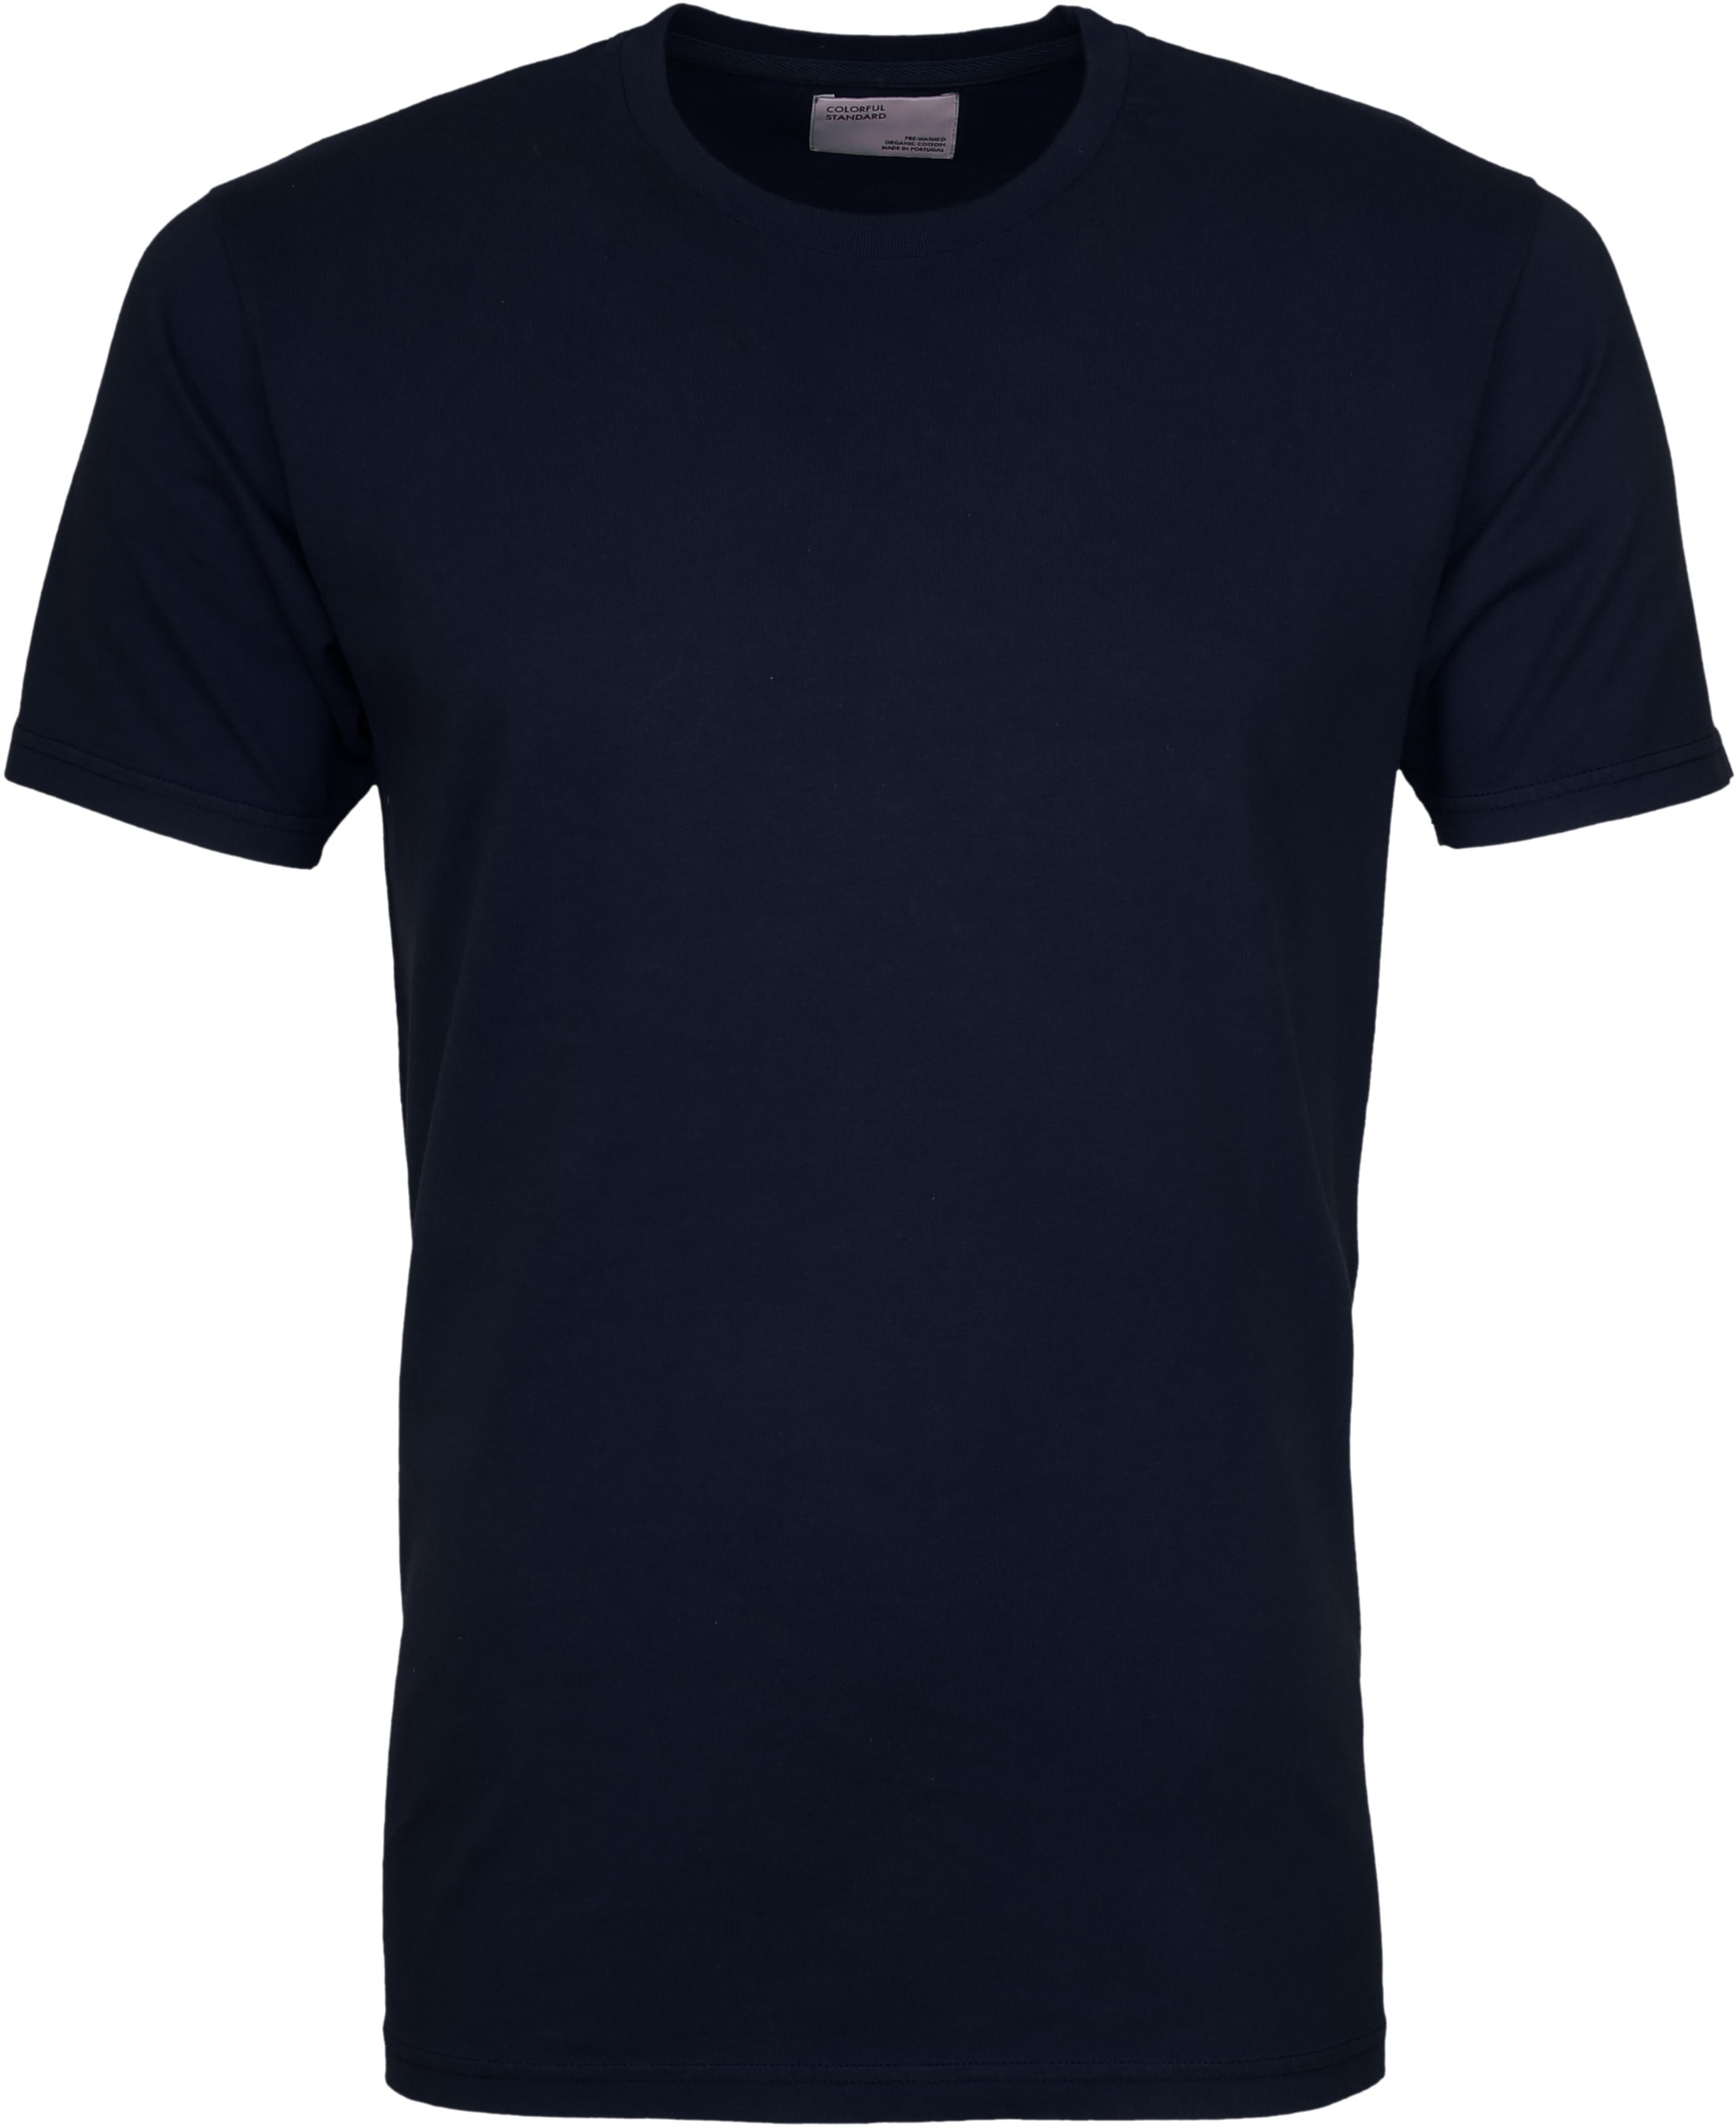 Colorful Standard T-shirt Navy Blue foto 0